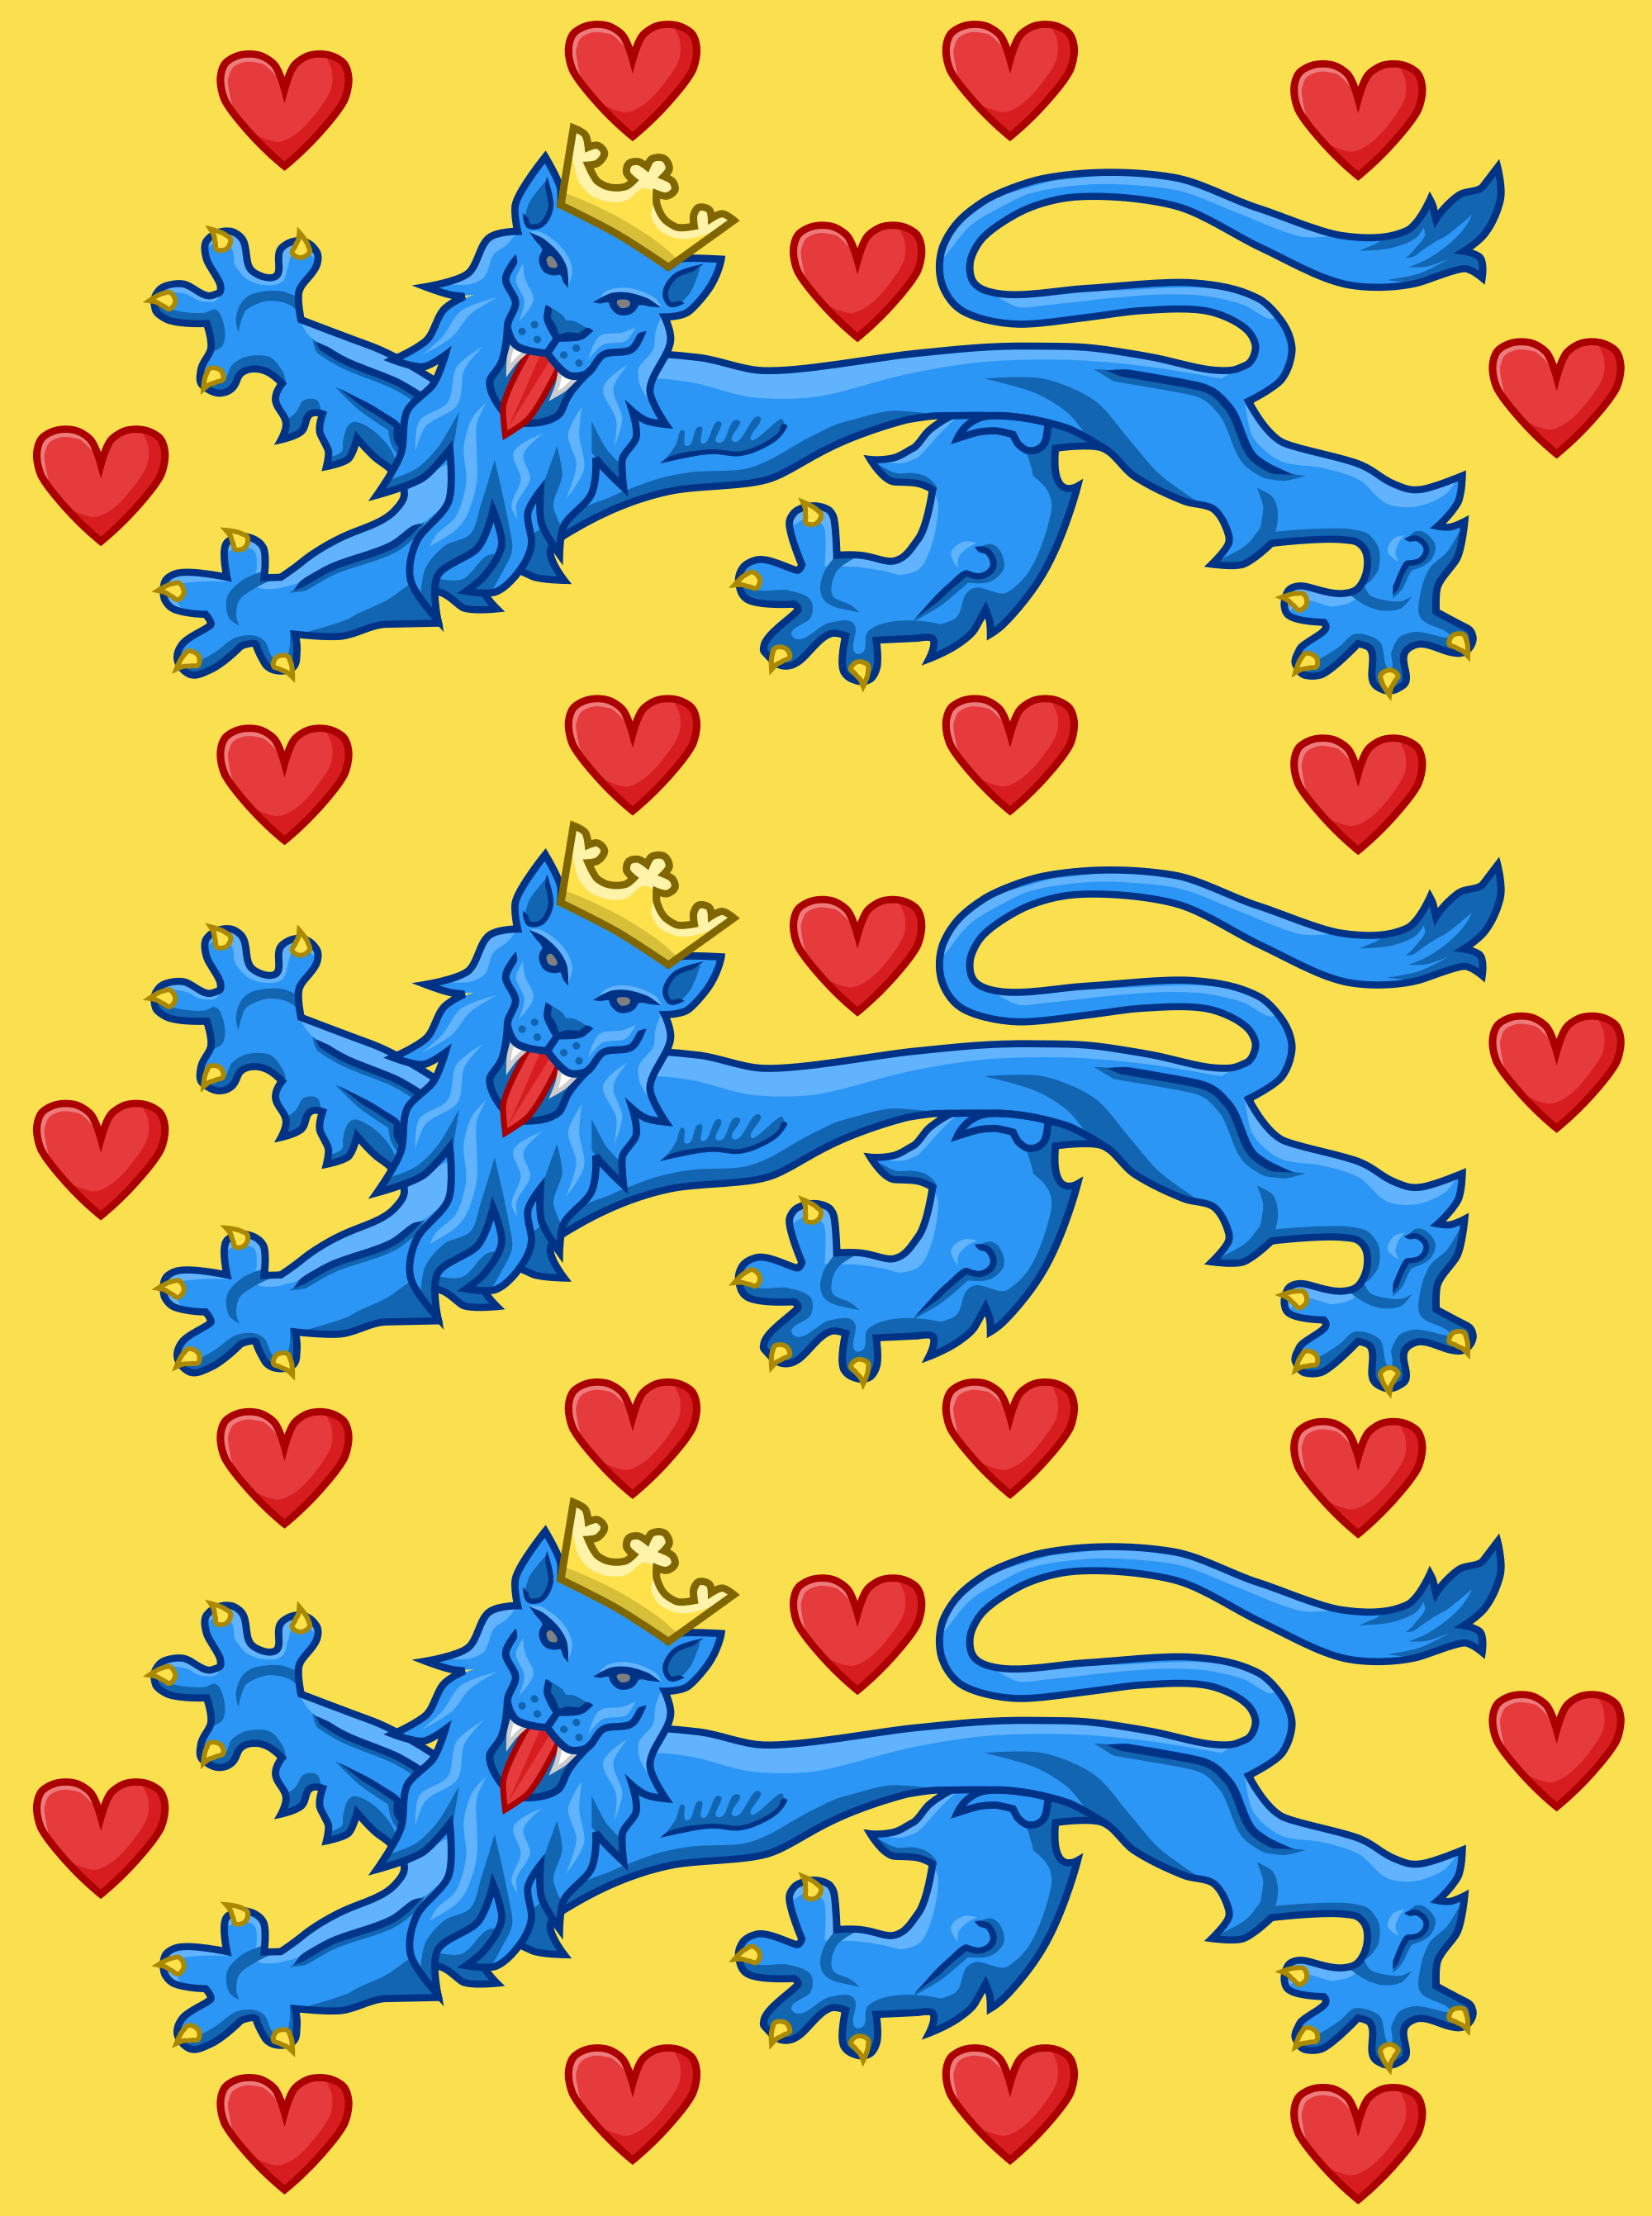 royal banner of the king of denmark in the 14th century based on